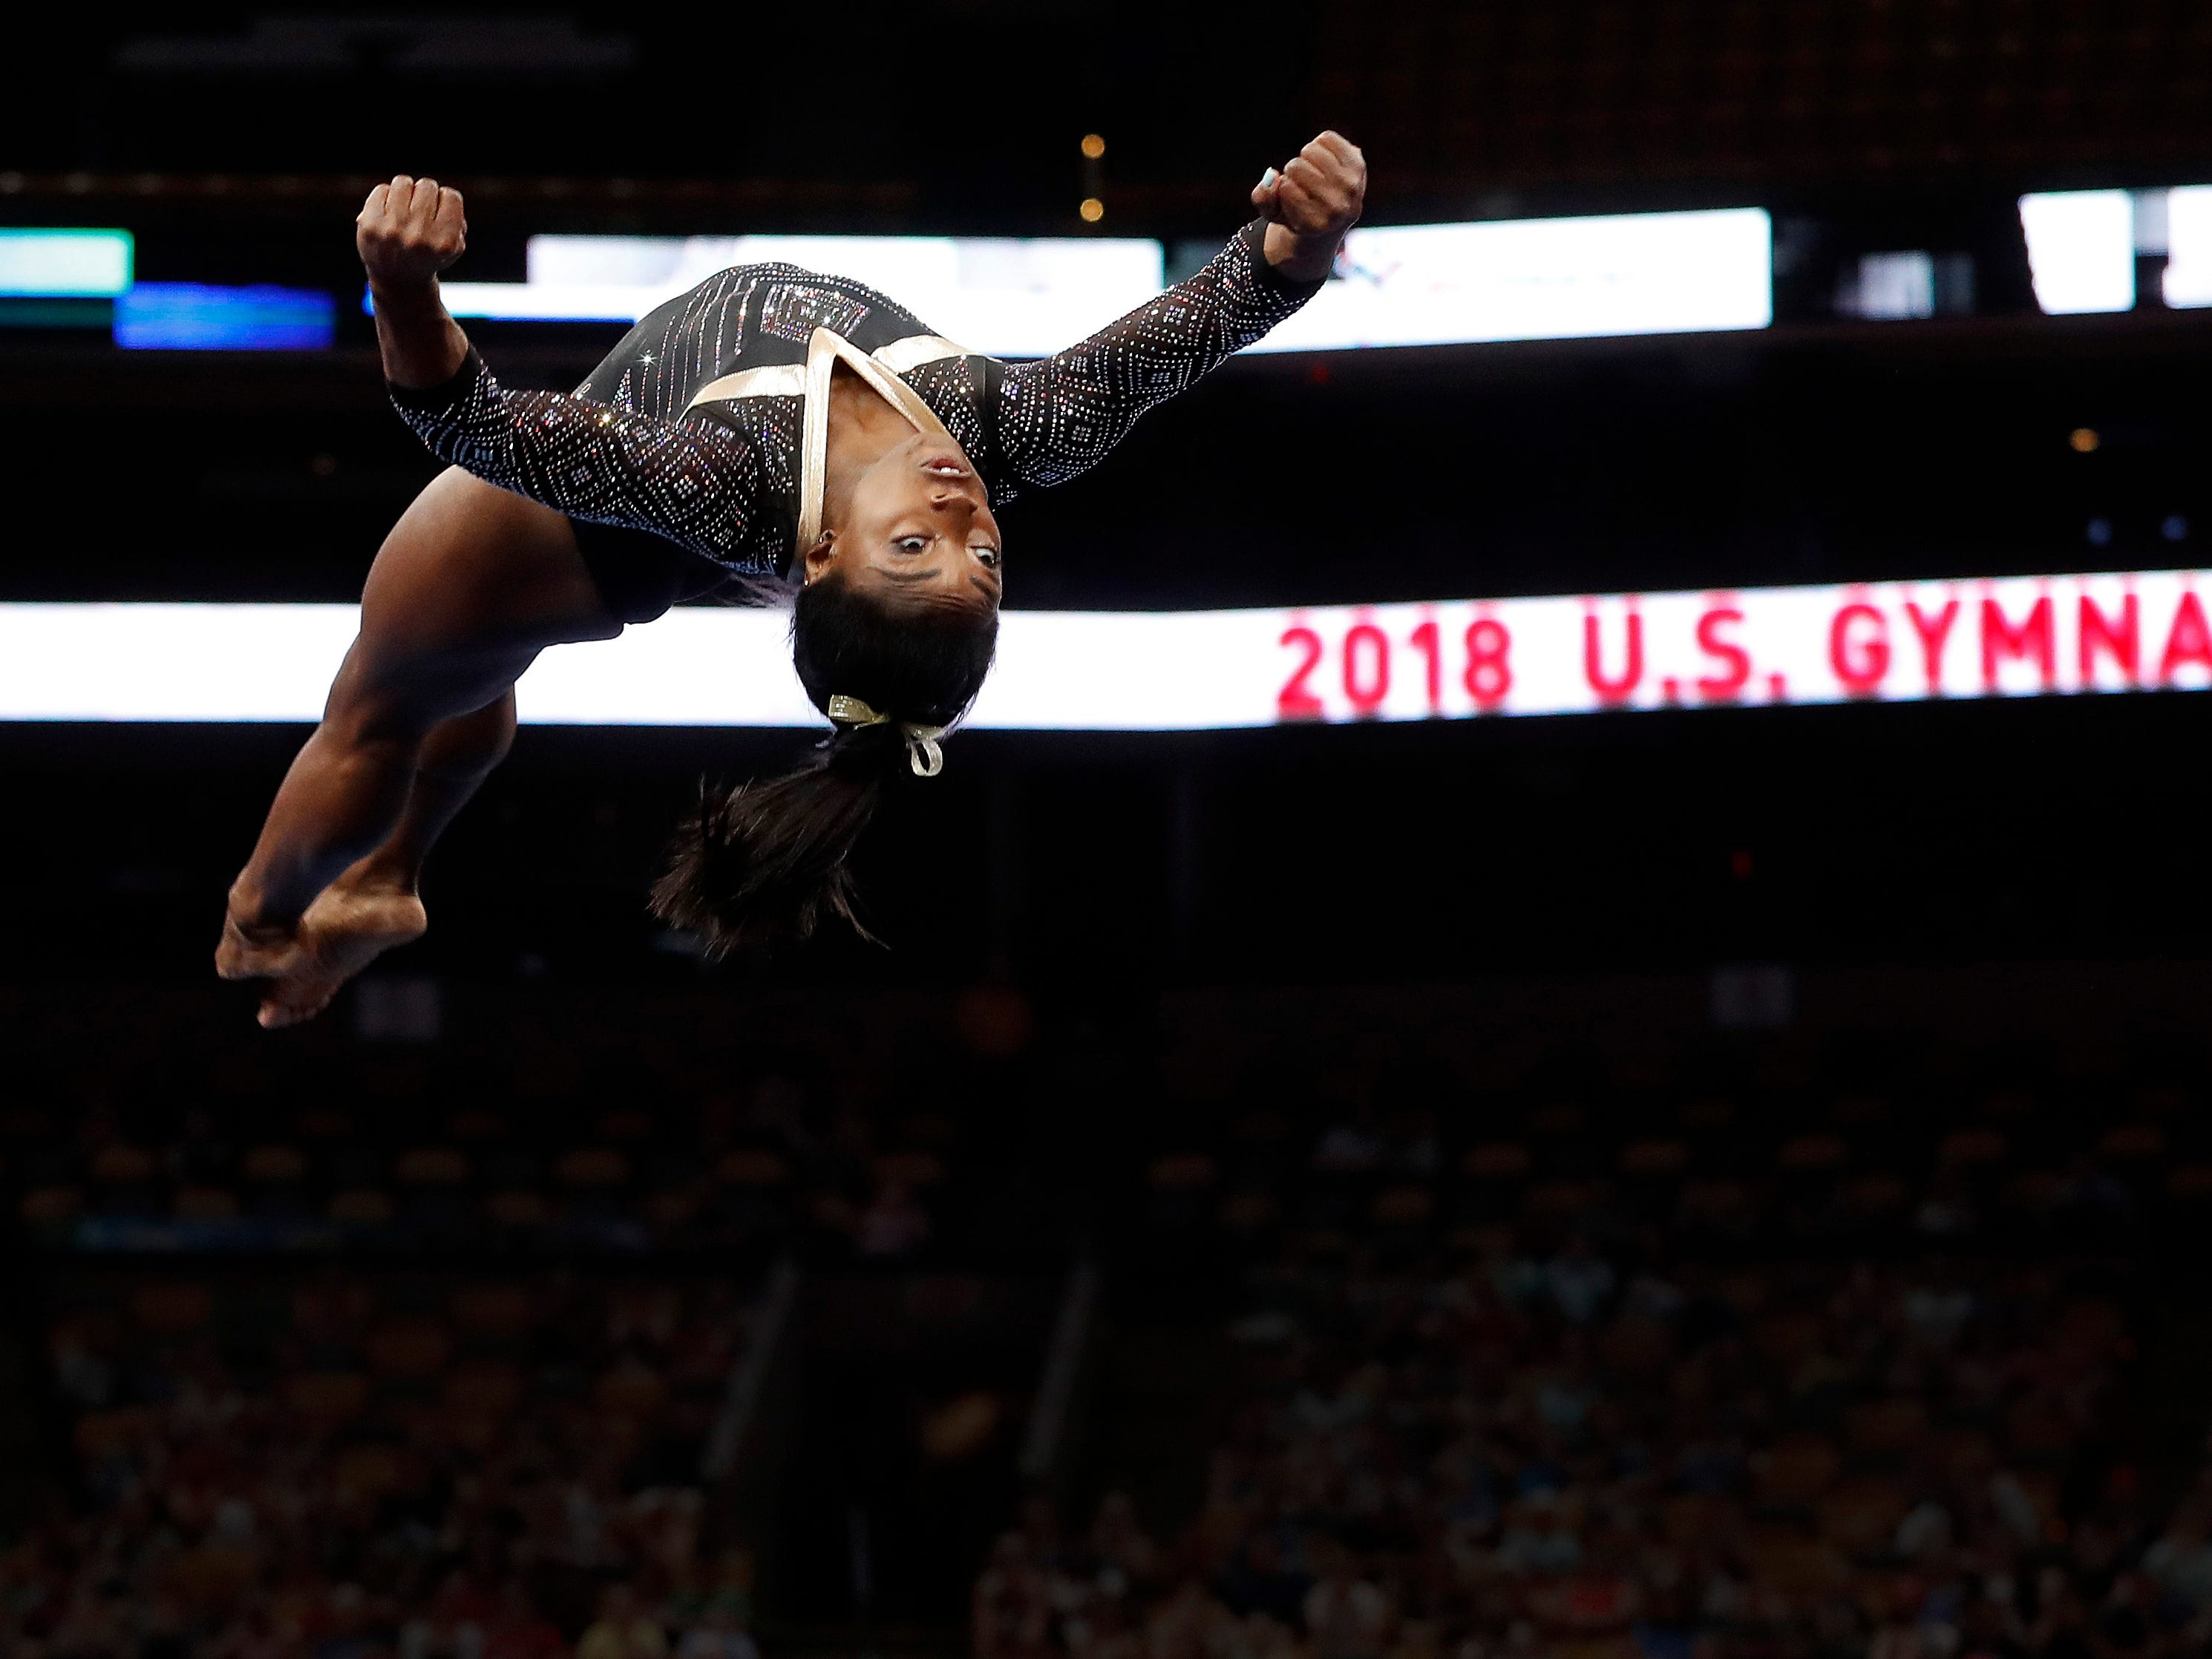 Simone Biles competes in the floor exercise during the U.S. Gymnastics Championships at TD Garden on Aug. 17, 2018.